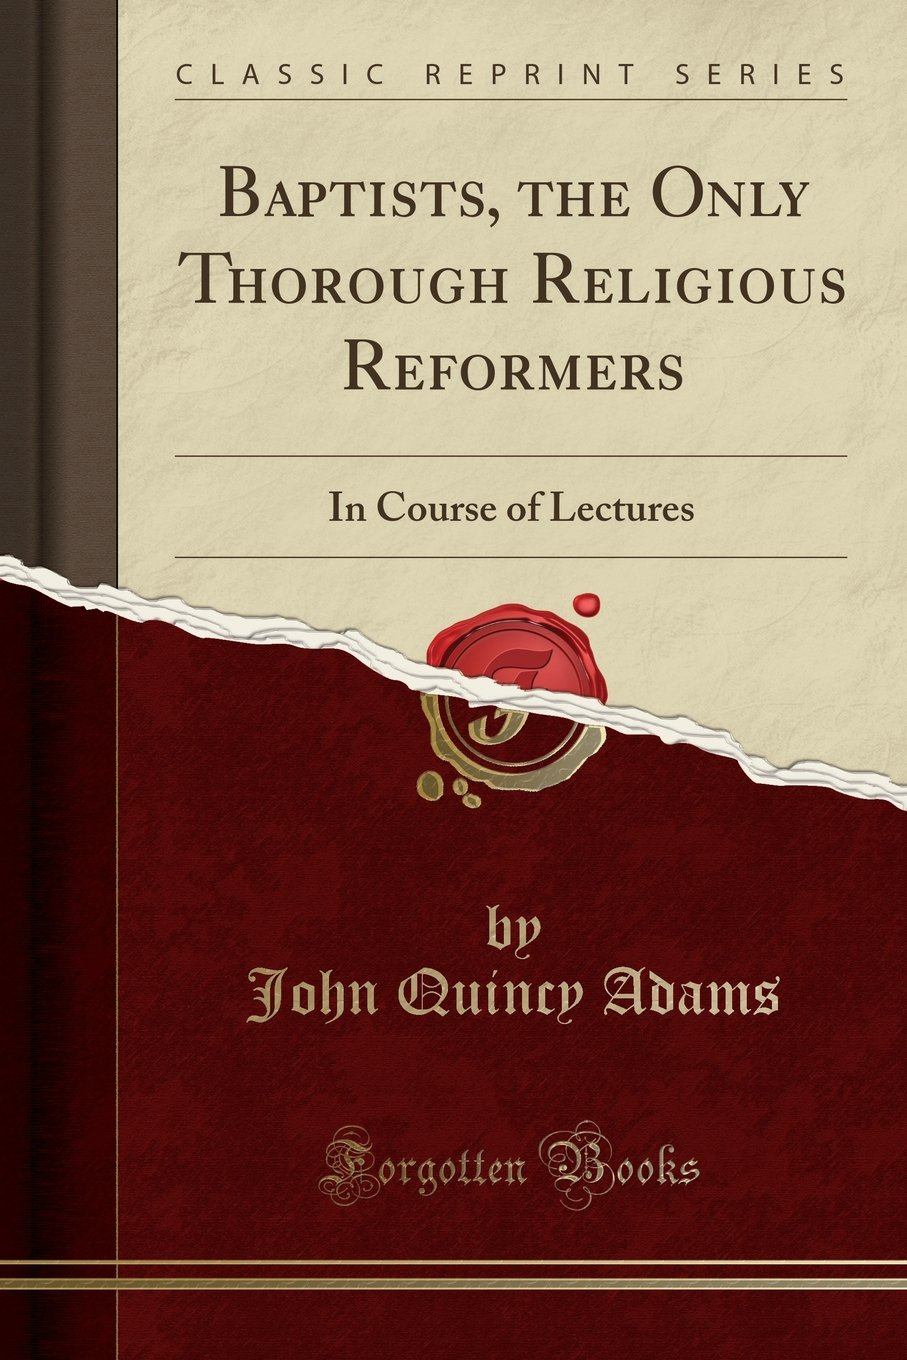 Baptists, the Only Thorough Religious Reformers: In Course of Lectures (Classic Reprint) ebook